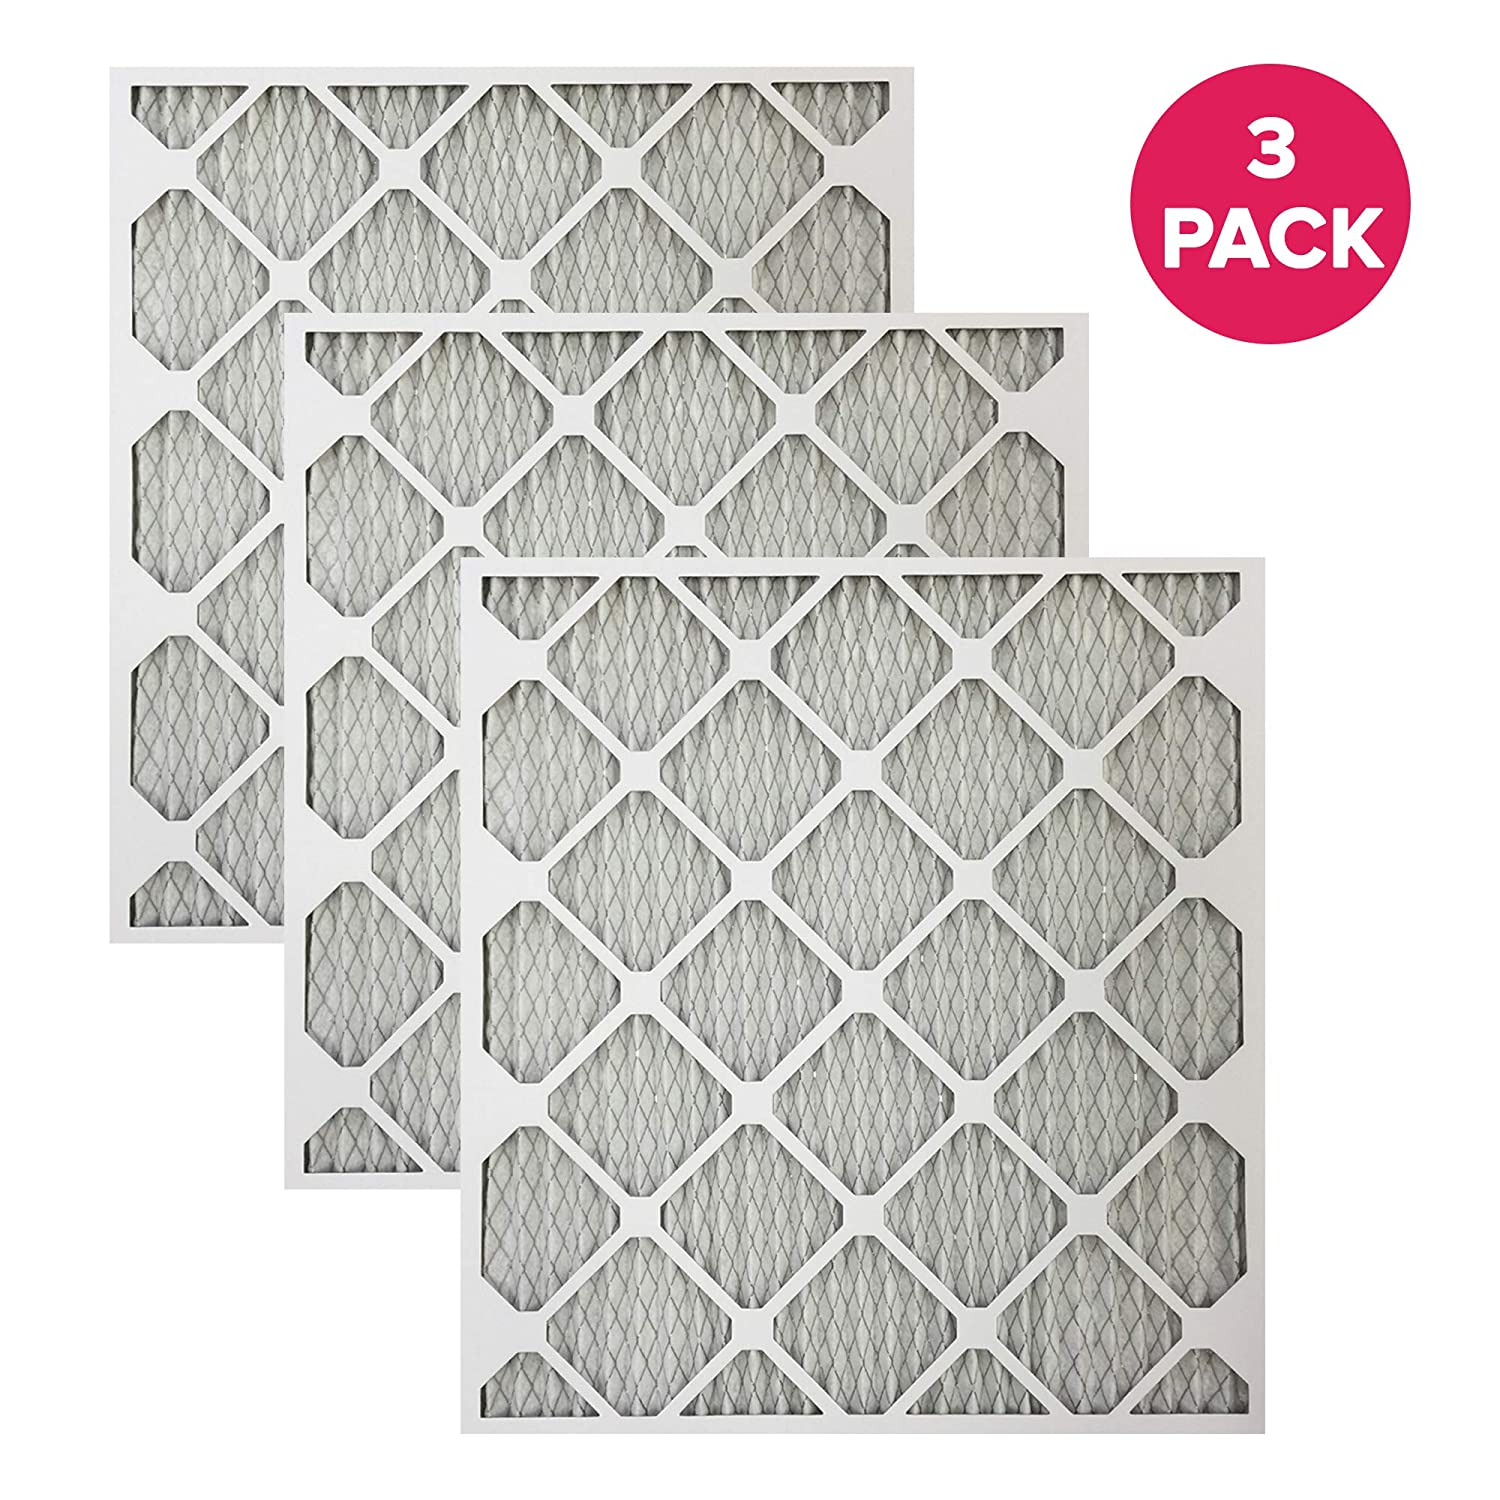 Pleated Think Crucial 3 Replacements for 21x23x1 MERV 11 Allergen Air Furnace /& Air Conditioner Filter